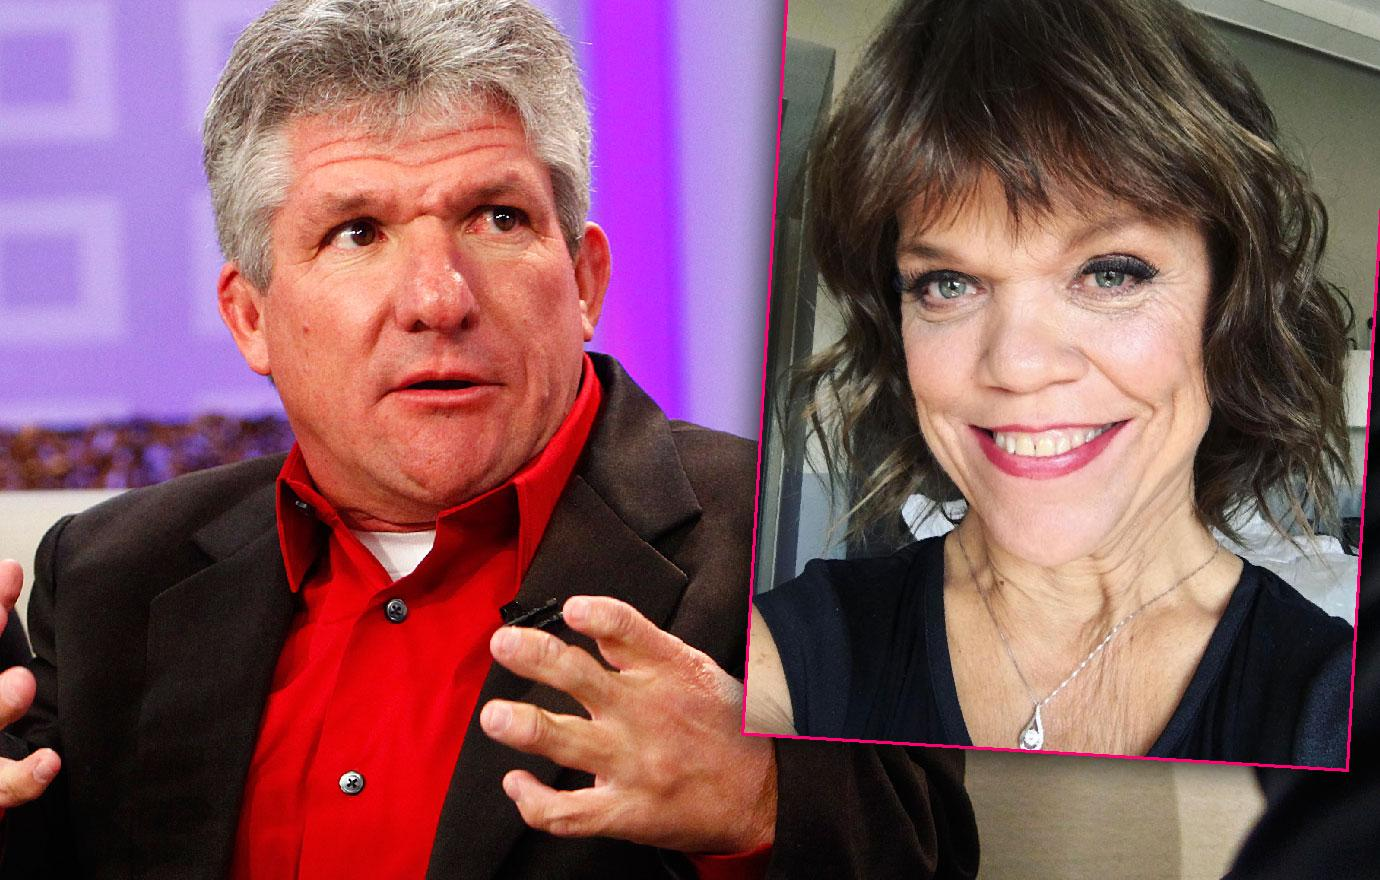 Matt Roloff Rips Little People Producers While Amy Celebrates Premiere